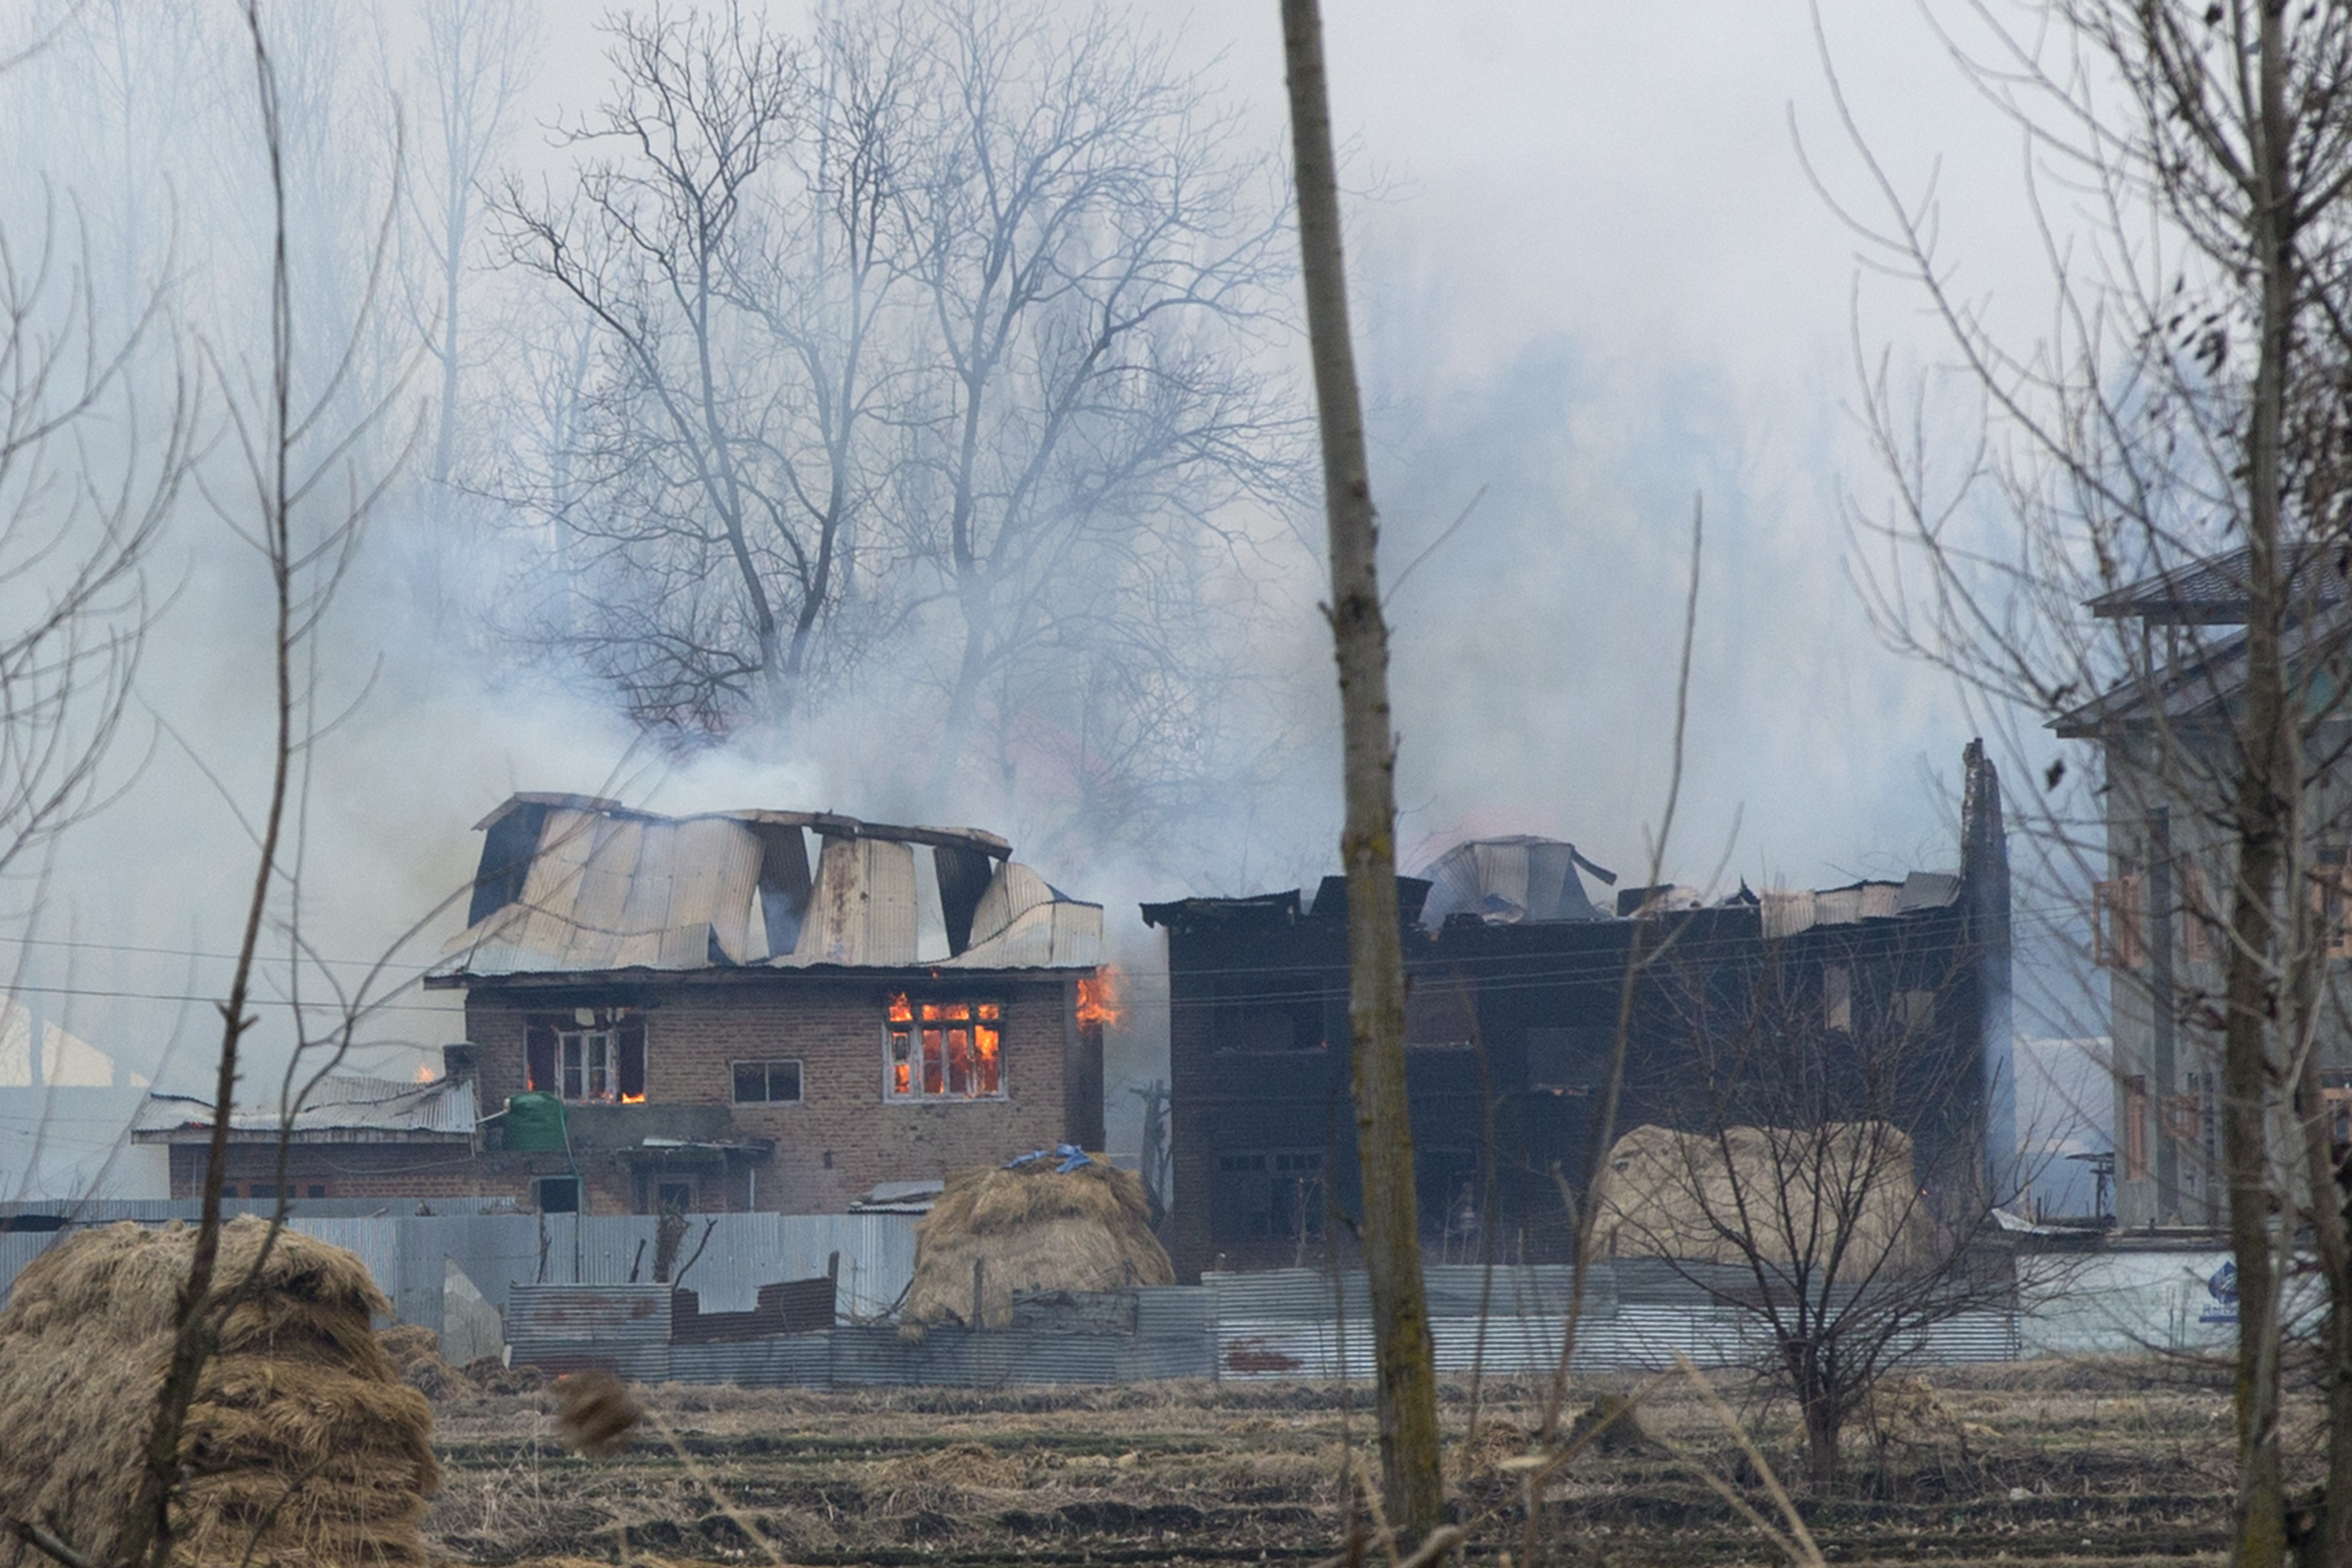 Flames and smoke billows from residential buildings where militants are suspected to have taken refuge during a gun battle in Pulwama, south of Srinagar, Indian controlled Kashmir, Feb. 18, 2019.